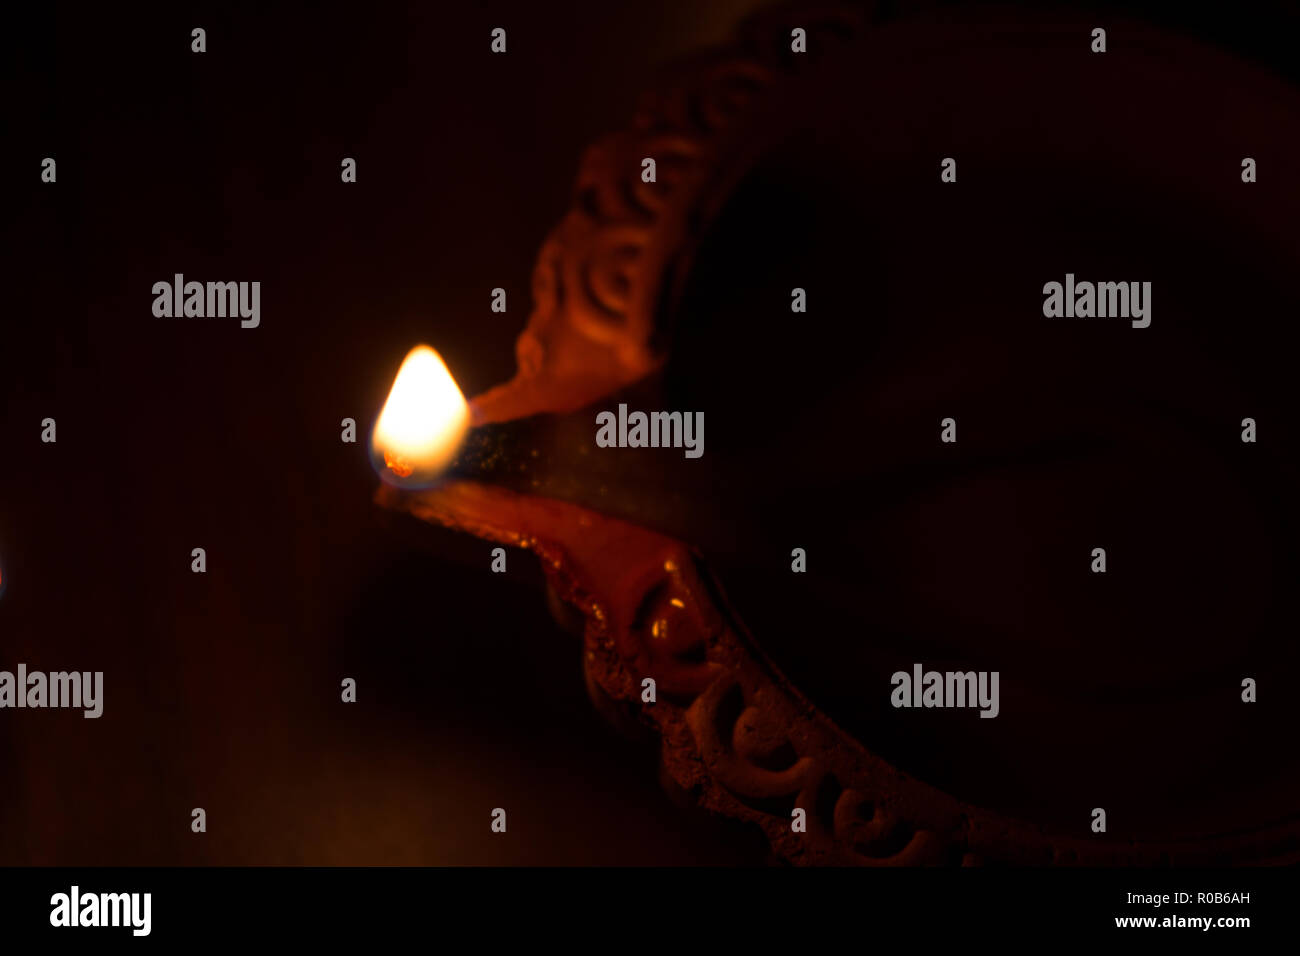 Closeup of Diwali terracotta diyas on dark background which are used lighting up the house during diwali times Stock Photo